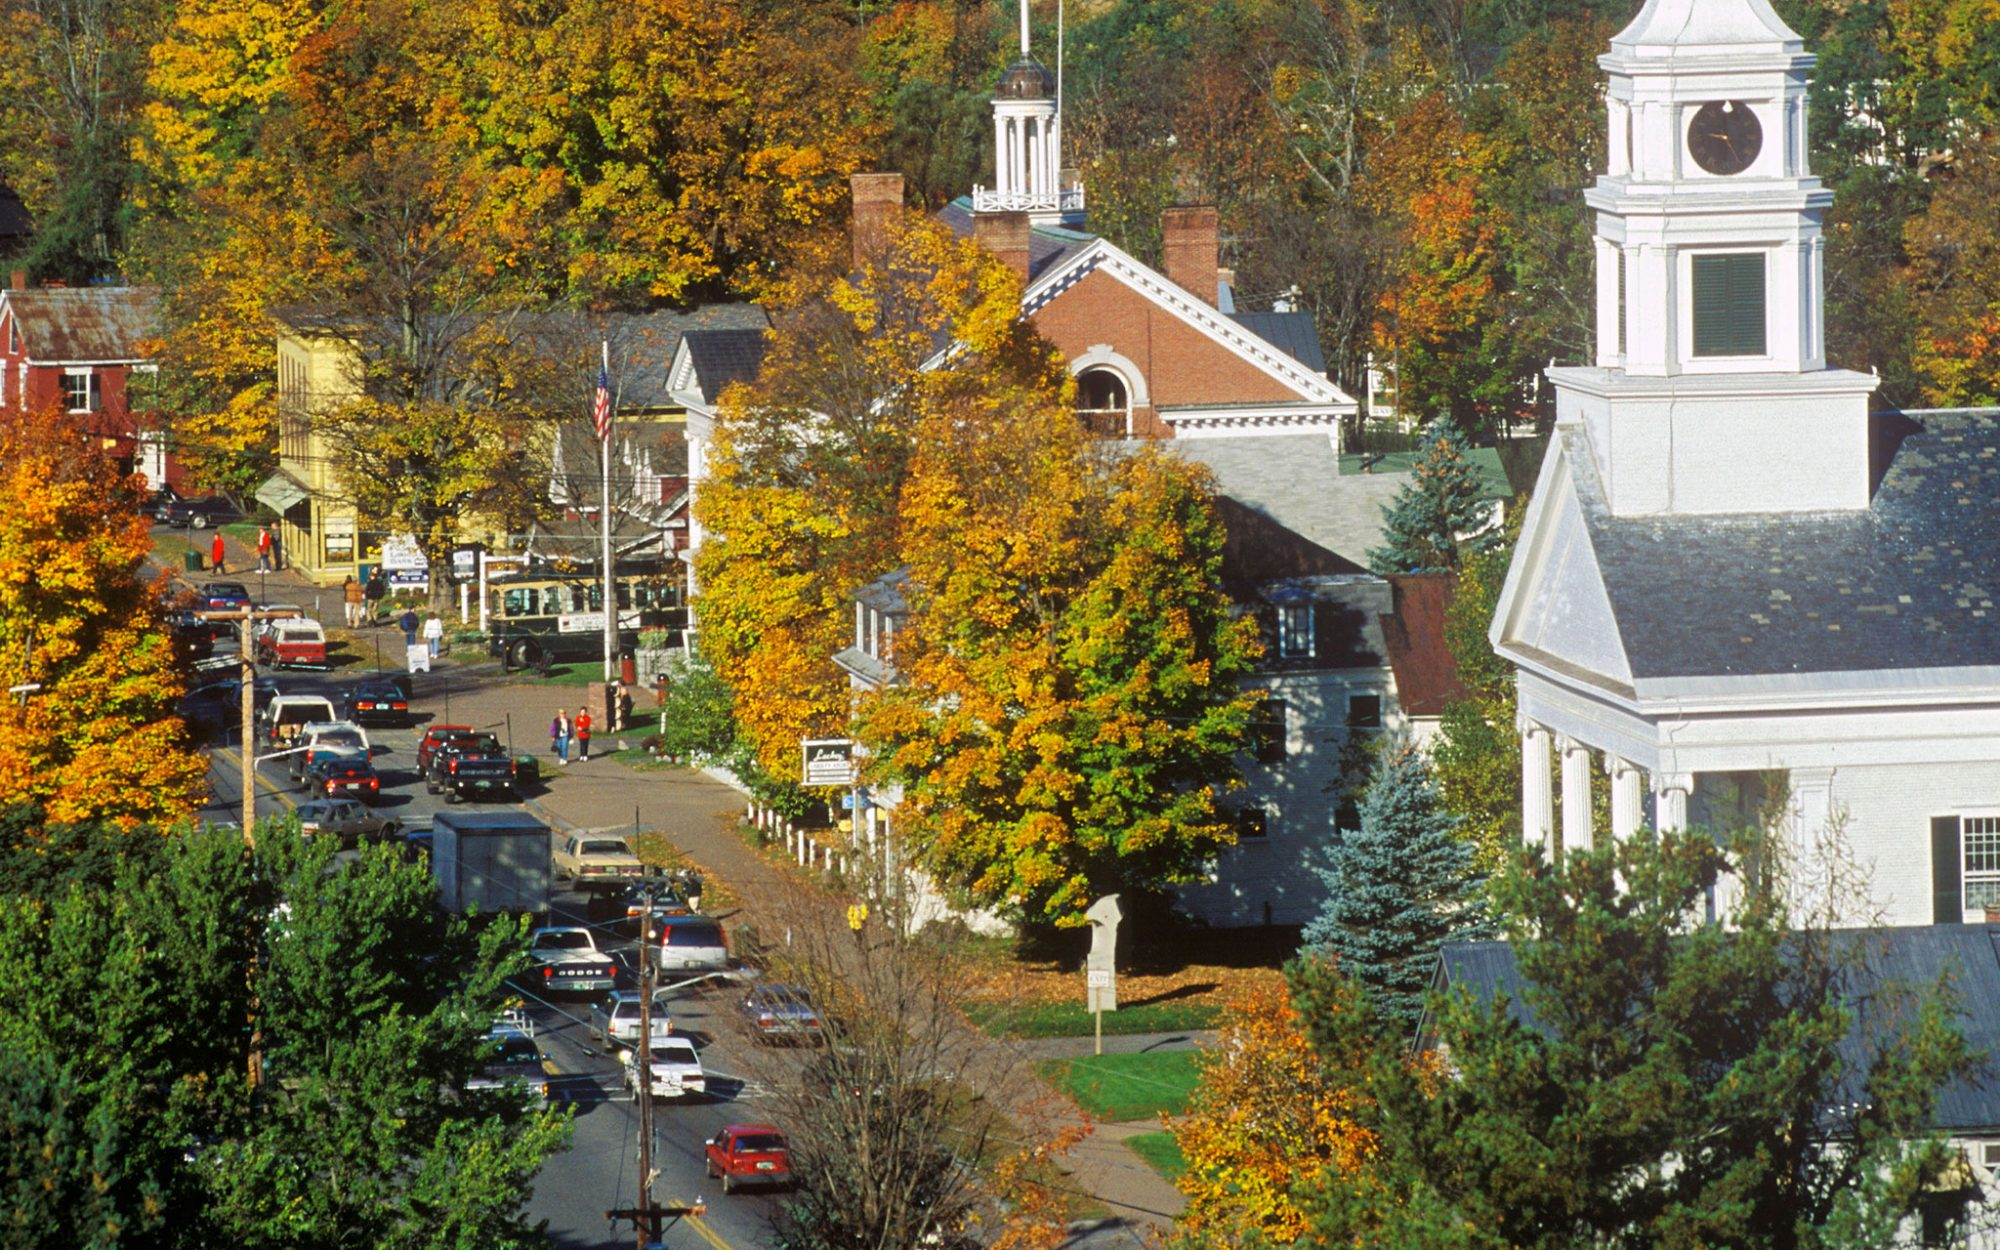 201402-w-romantic-towns-stowe